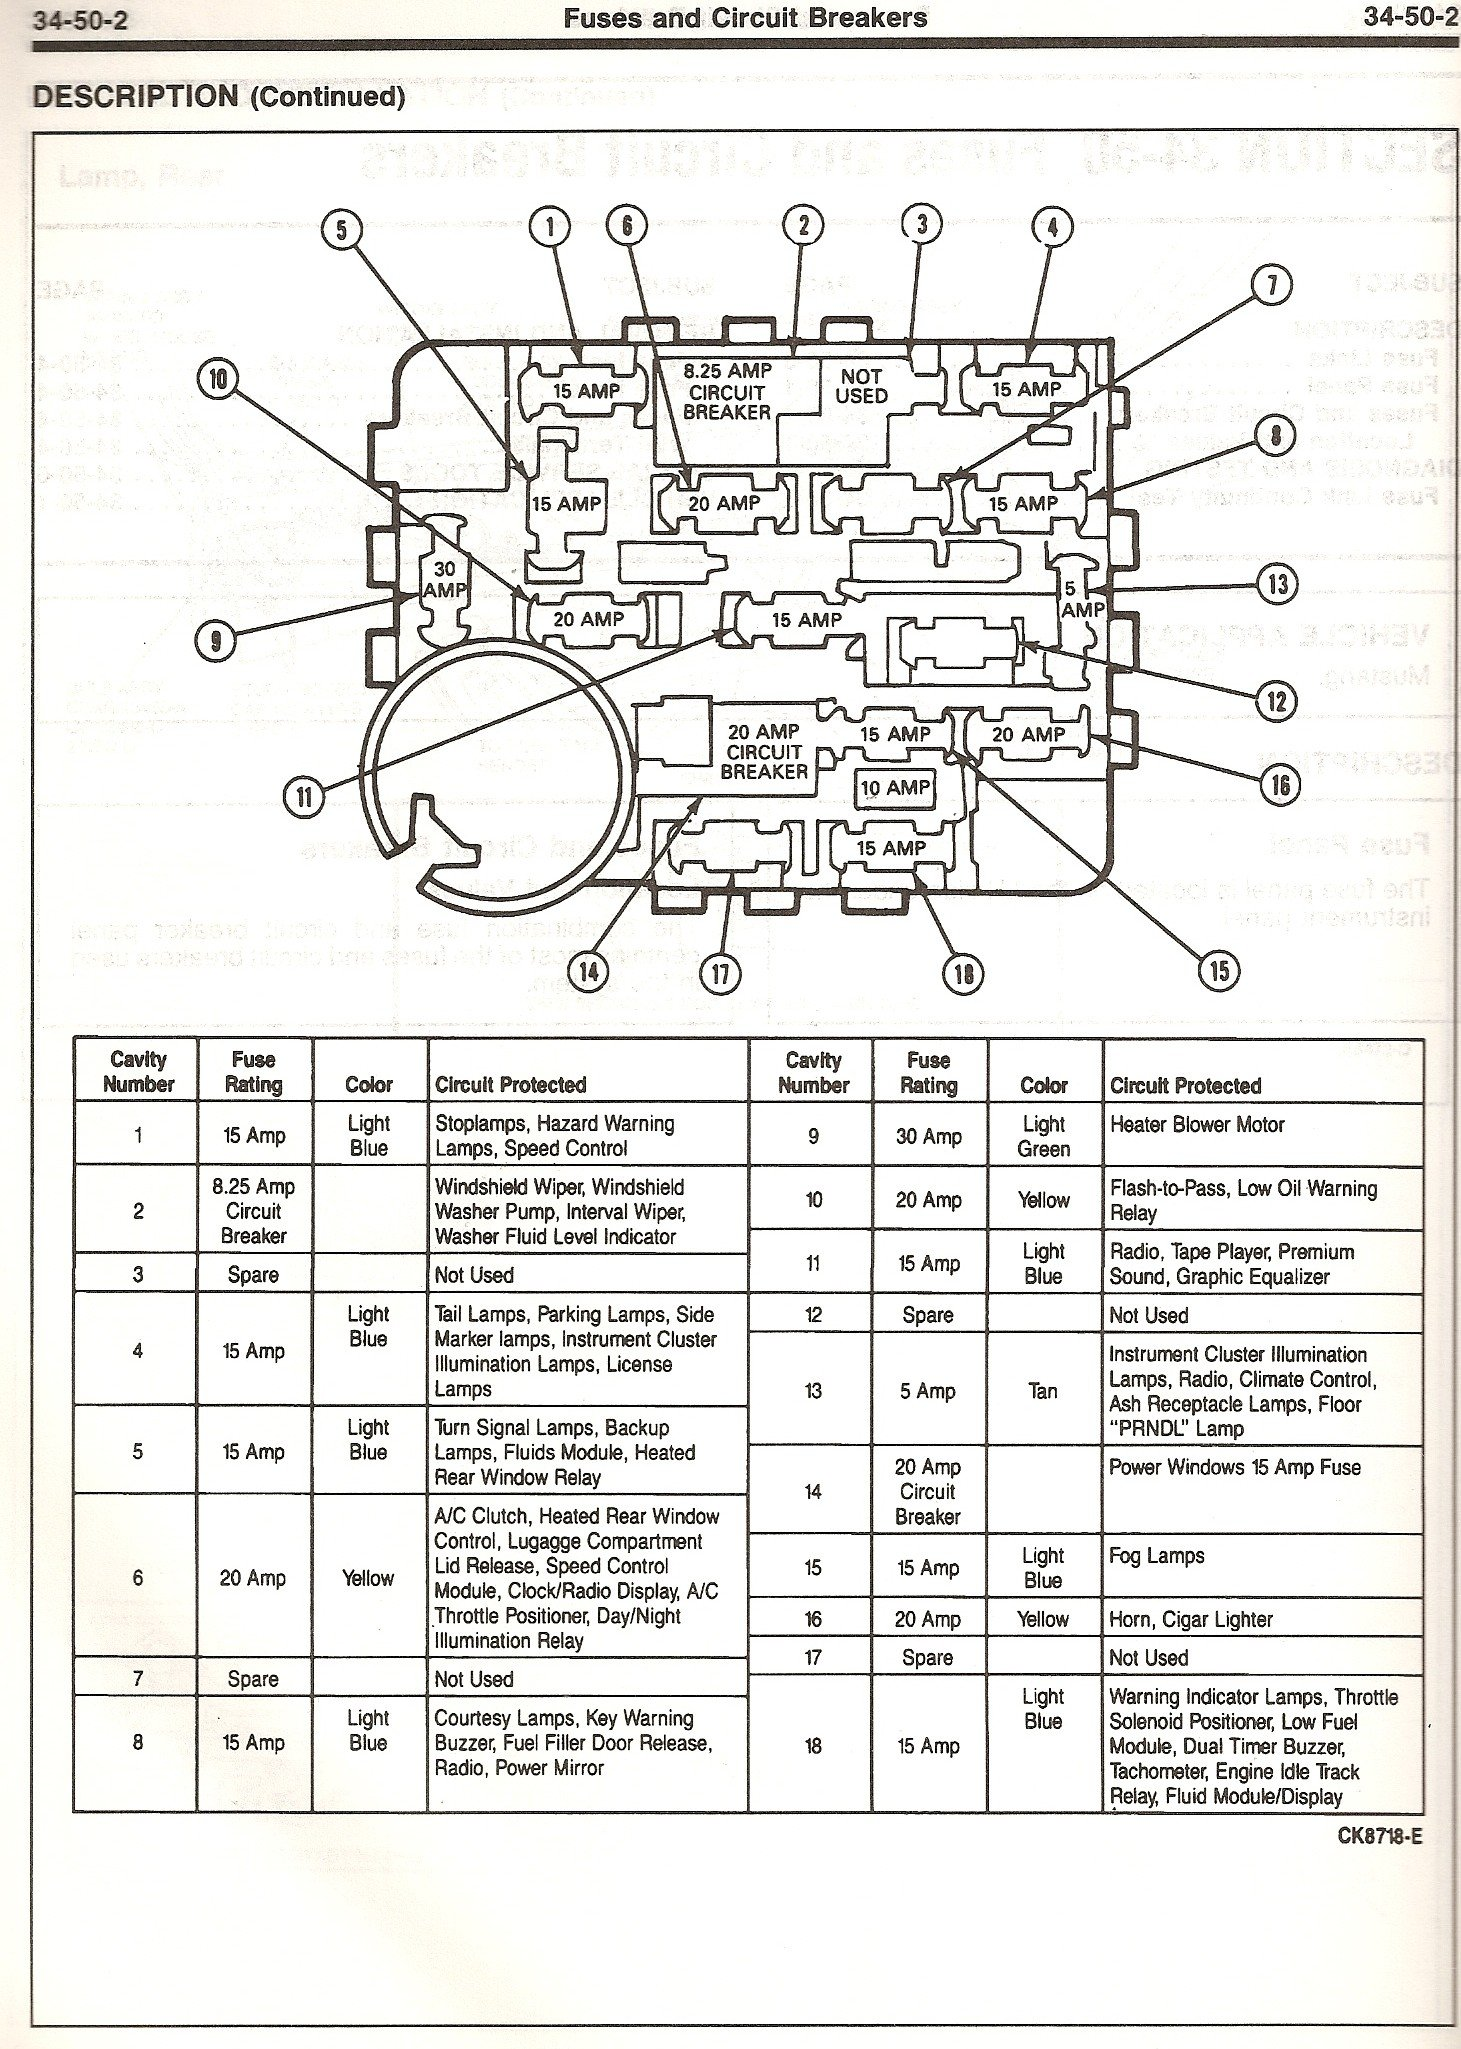 30633d1185070172 1990 2 3 mustang missing scan7 04 gt fuse box wiring diagram simonand 1992 mustang fuse box diagram at bakdesigns.co